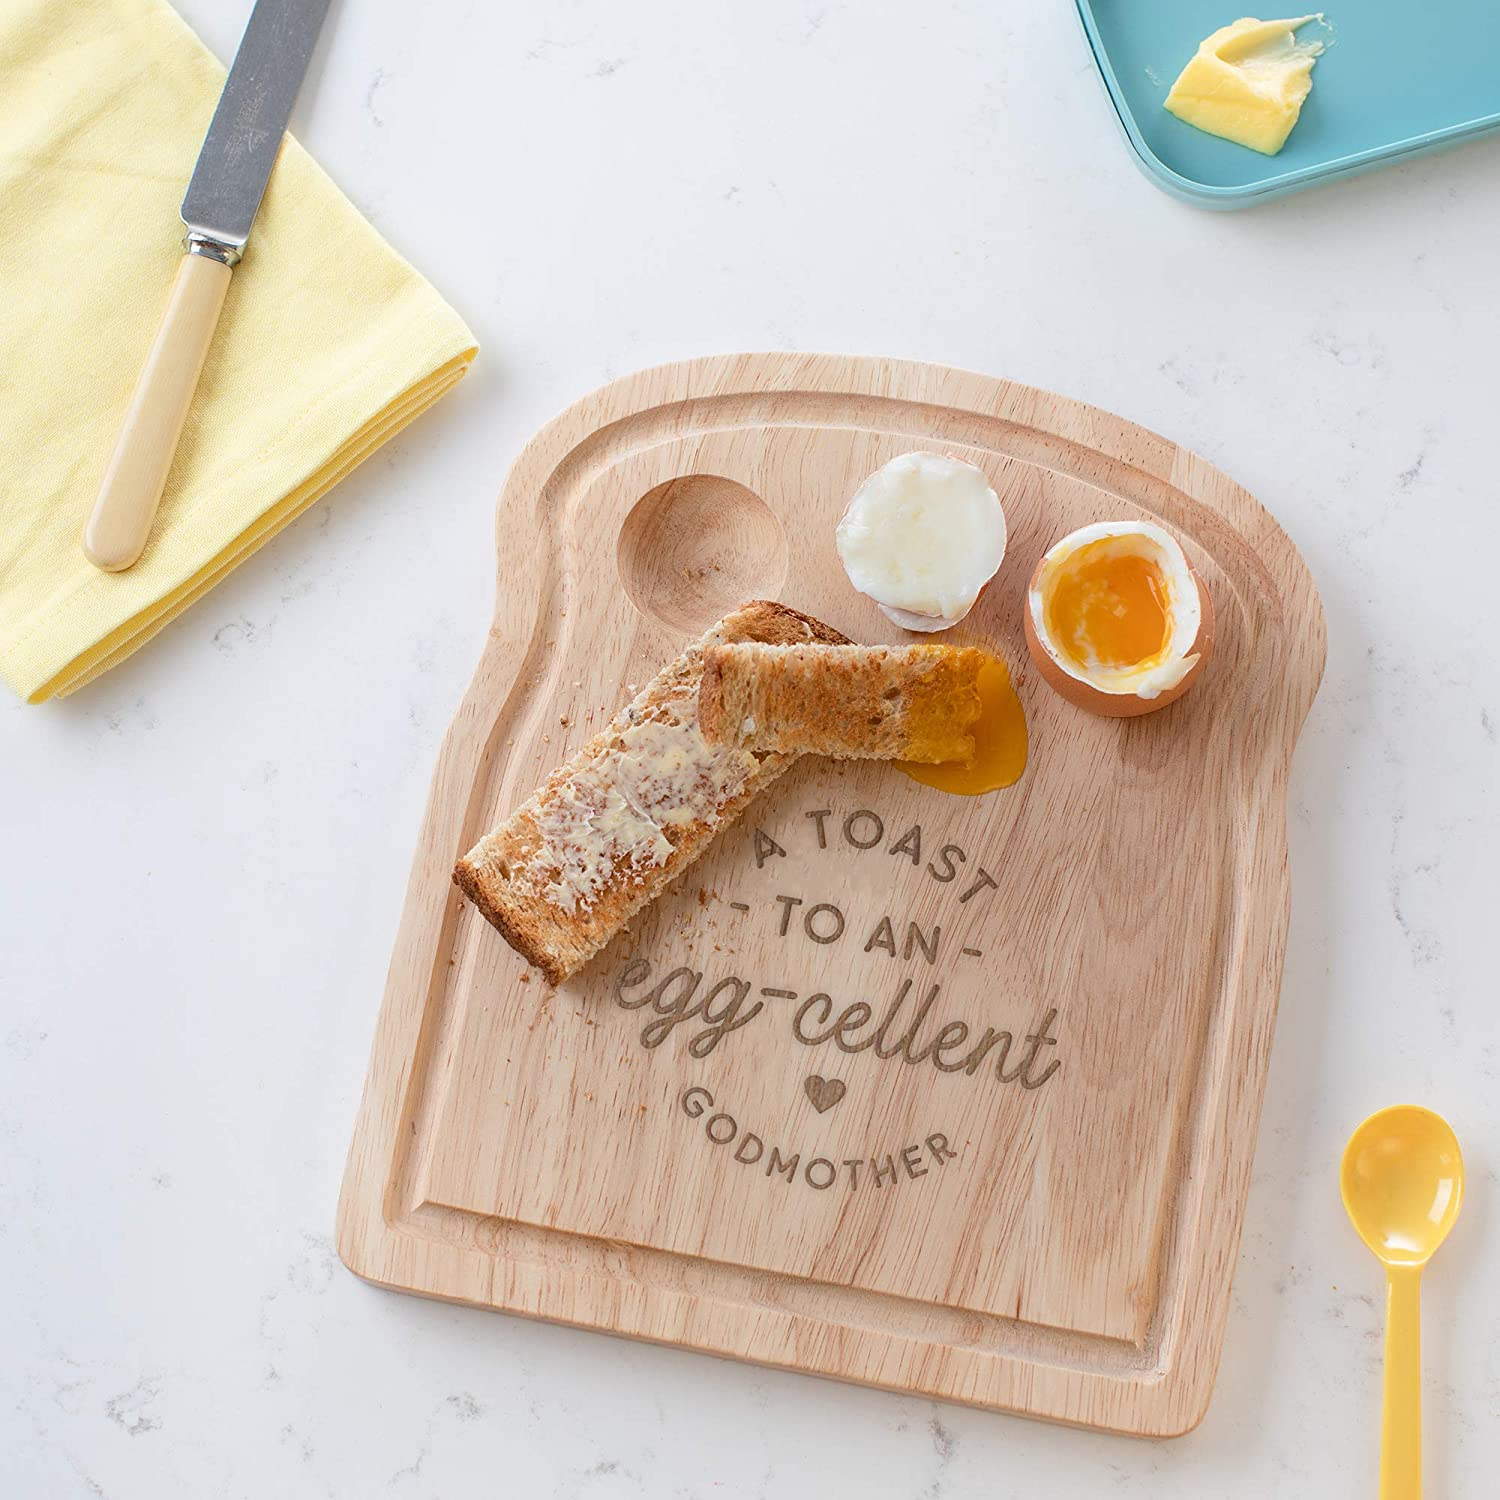 Funny Engraved Pun Design A Toast to an Egg-cellent Aunt Breakfast Egg Board Thank You Present Idea Birthday Gifts for Aunt